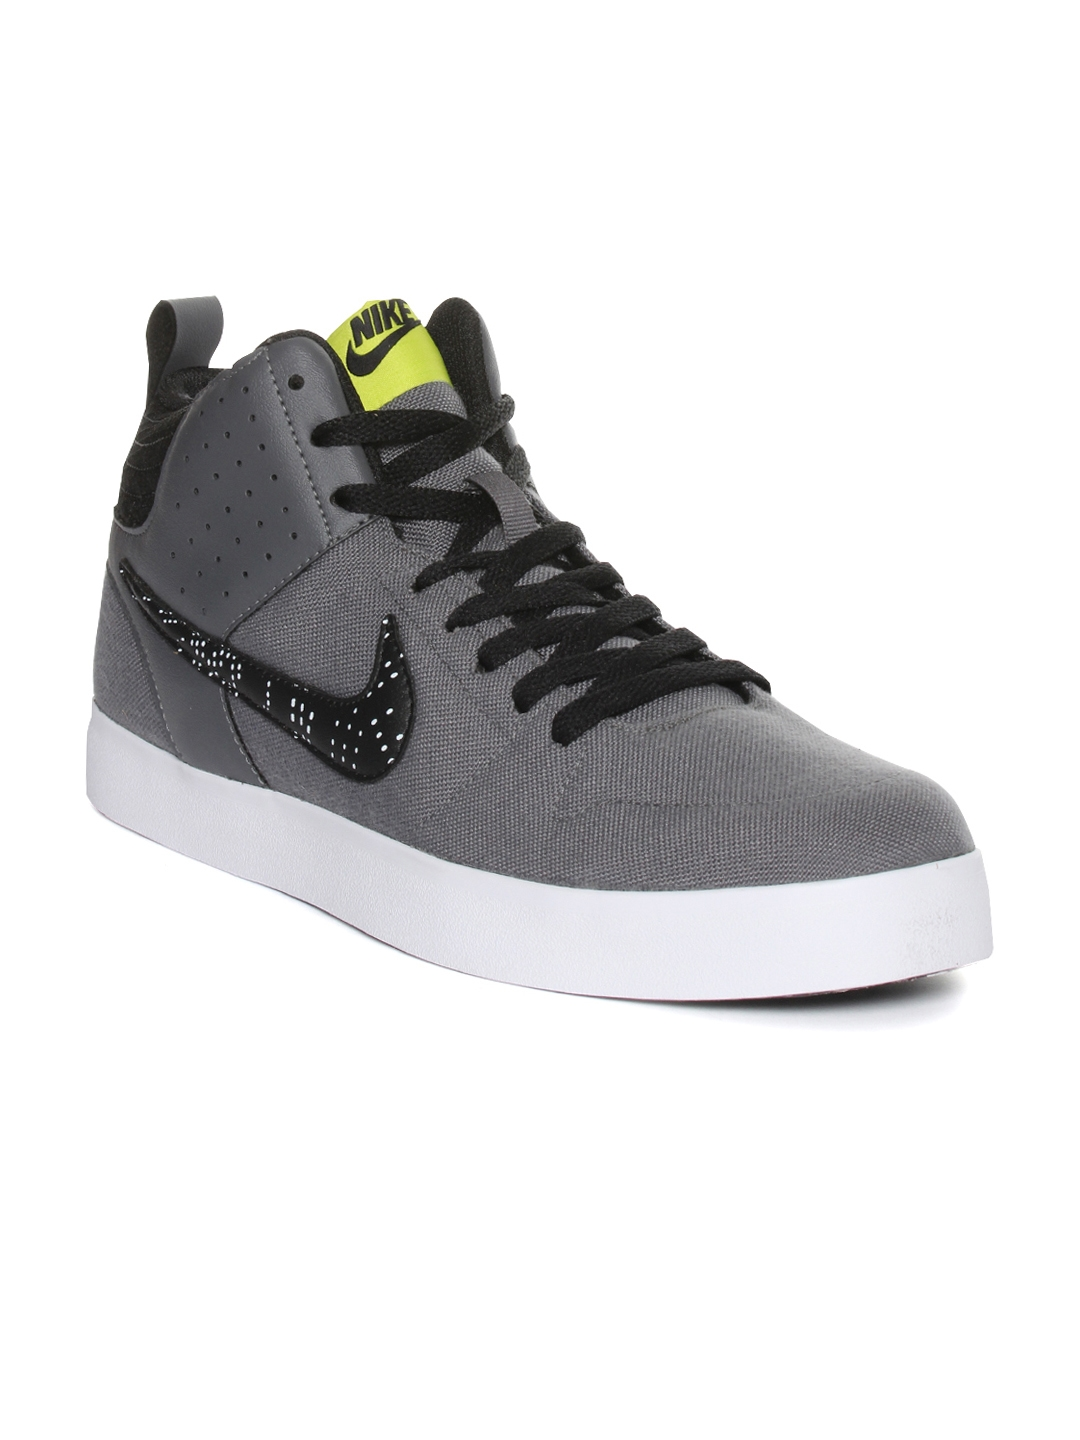 Nike Mens Casual Shoes Online India - Style Guru: Fashion ...